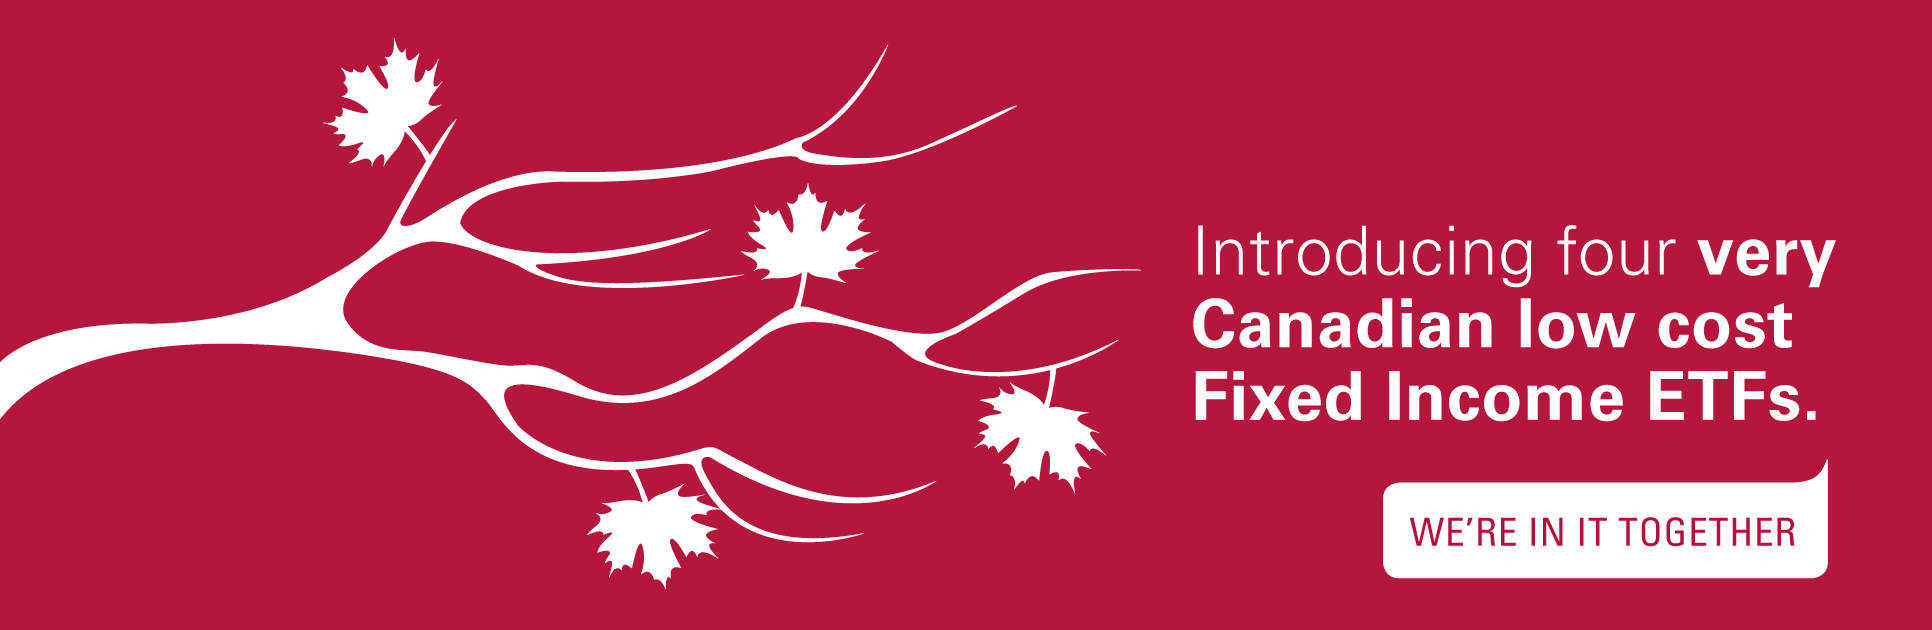 Introducing four very Canadian low cost Fixed Income ETFs